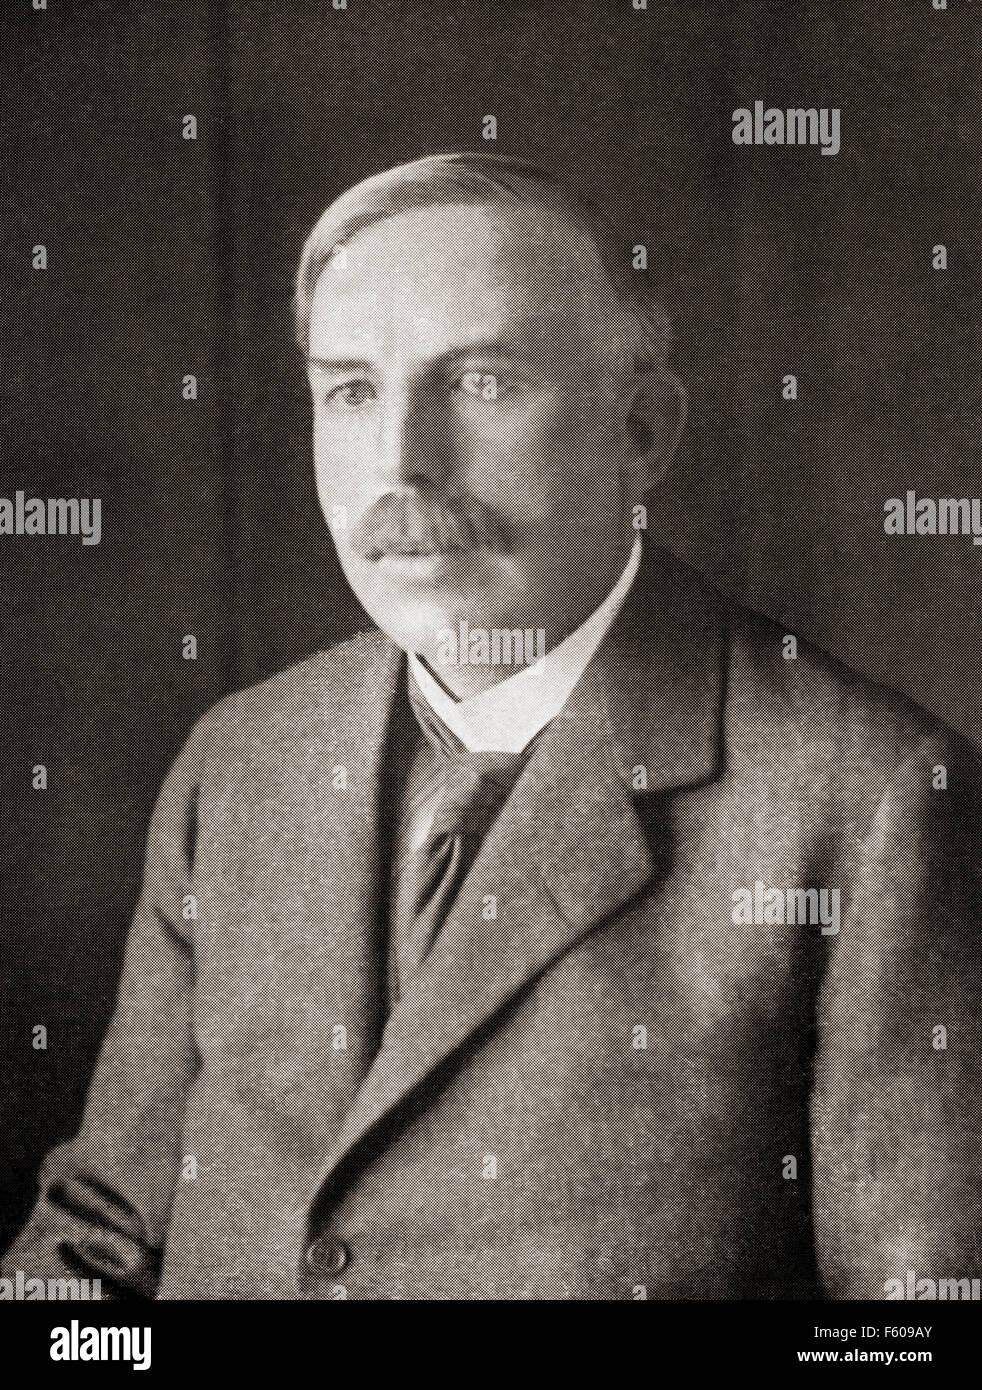 Ernest Rutherford, 1st Baron Rutherford of Nelson, 1871 – 1937.  New Zealand-born British physicist. - Stock Image